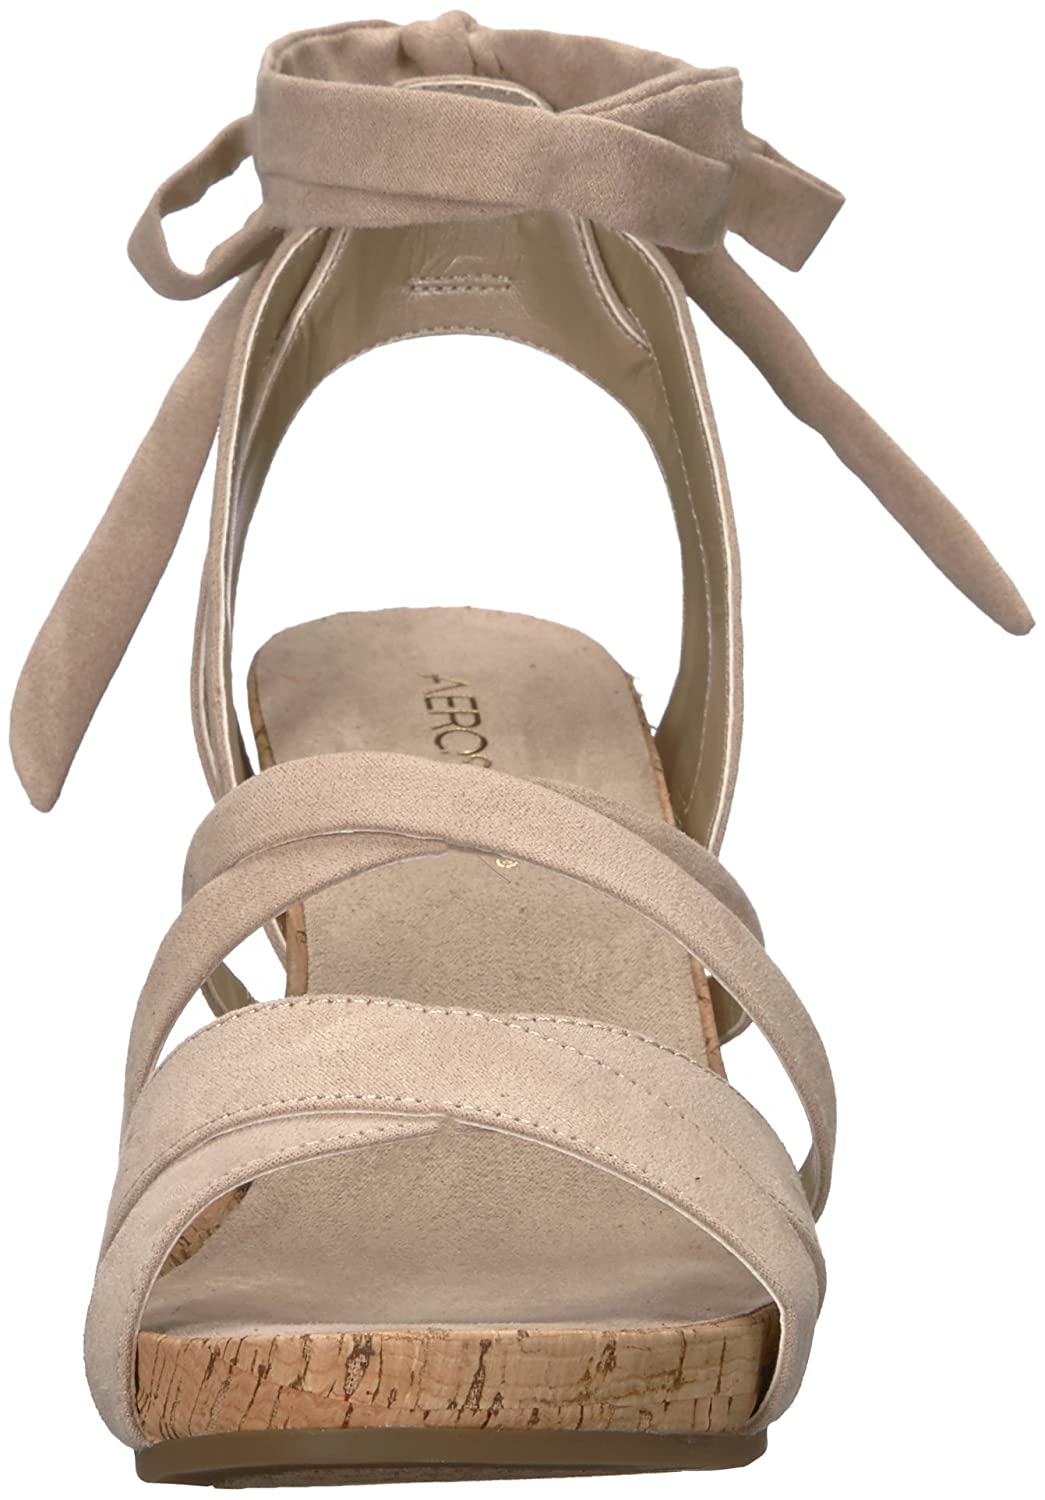 Pay With Paypal Limited Edition For Sale Sam Edelman Lewellyn Mule(Women's) -New Nude Leopard Leopard Brahma Hair Buy Cheap Largest Supplier Store With Big Discount Get To Buy Ygq0pwByv